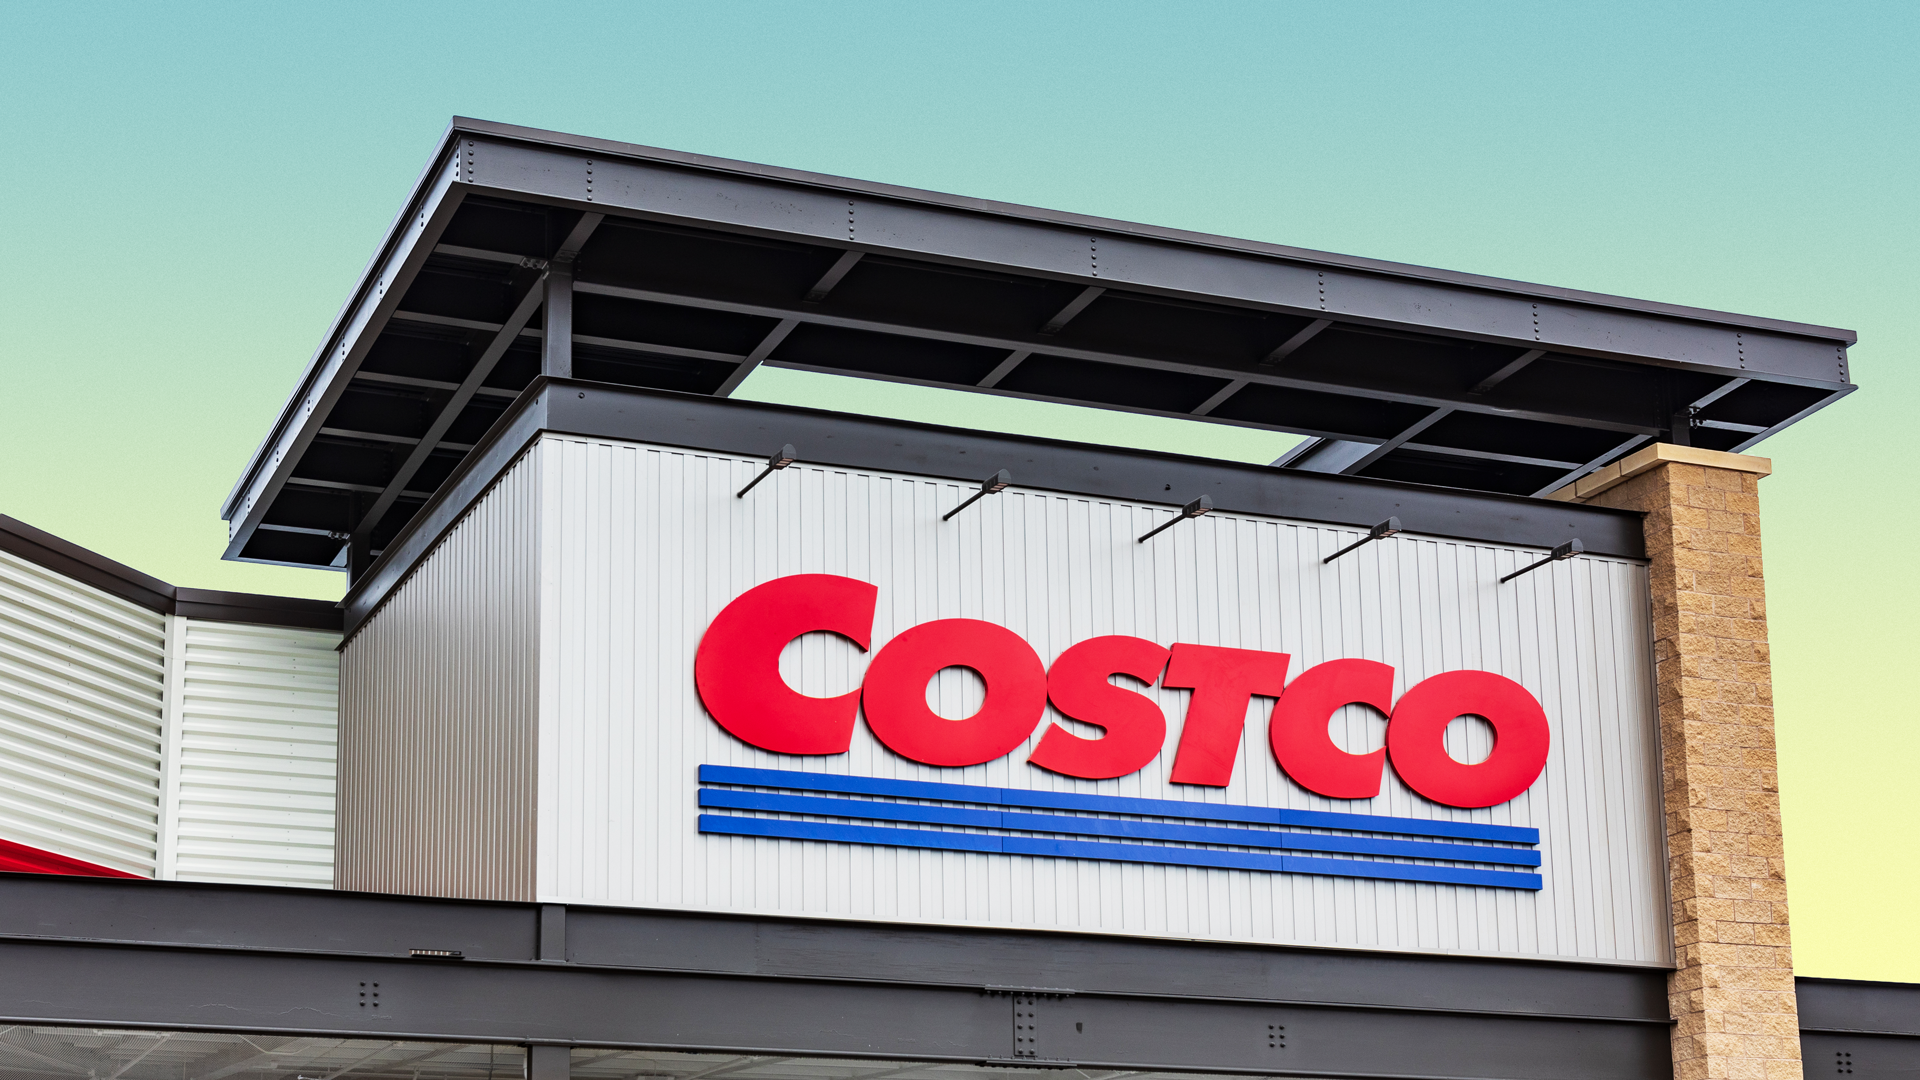 This Costco Easter Egg Cake Will Be the Star of Your Easter Meal